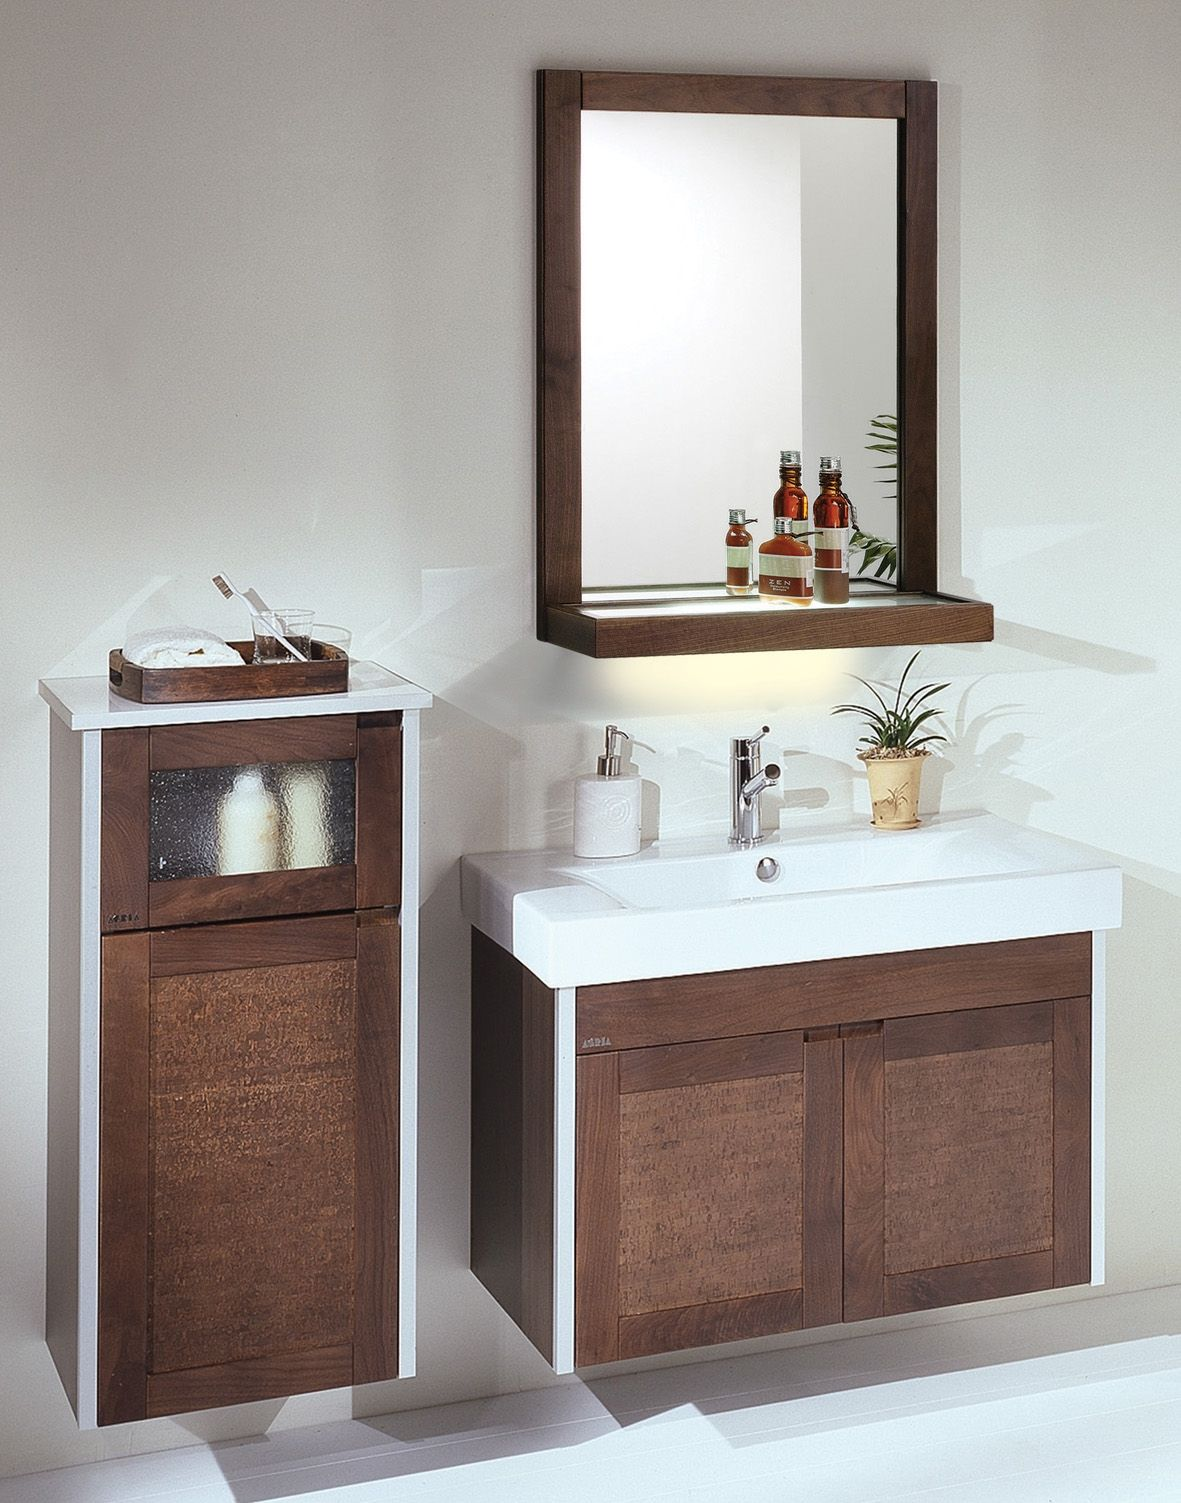 Oak bathroom accessories - Bathroom Vanity Traditional Mirror Storage Oak Bathroom Vanity Sink Cabinet Bathroom Cabinetbathroom